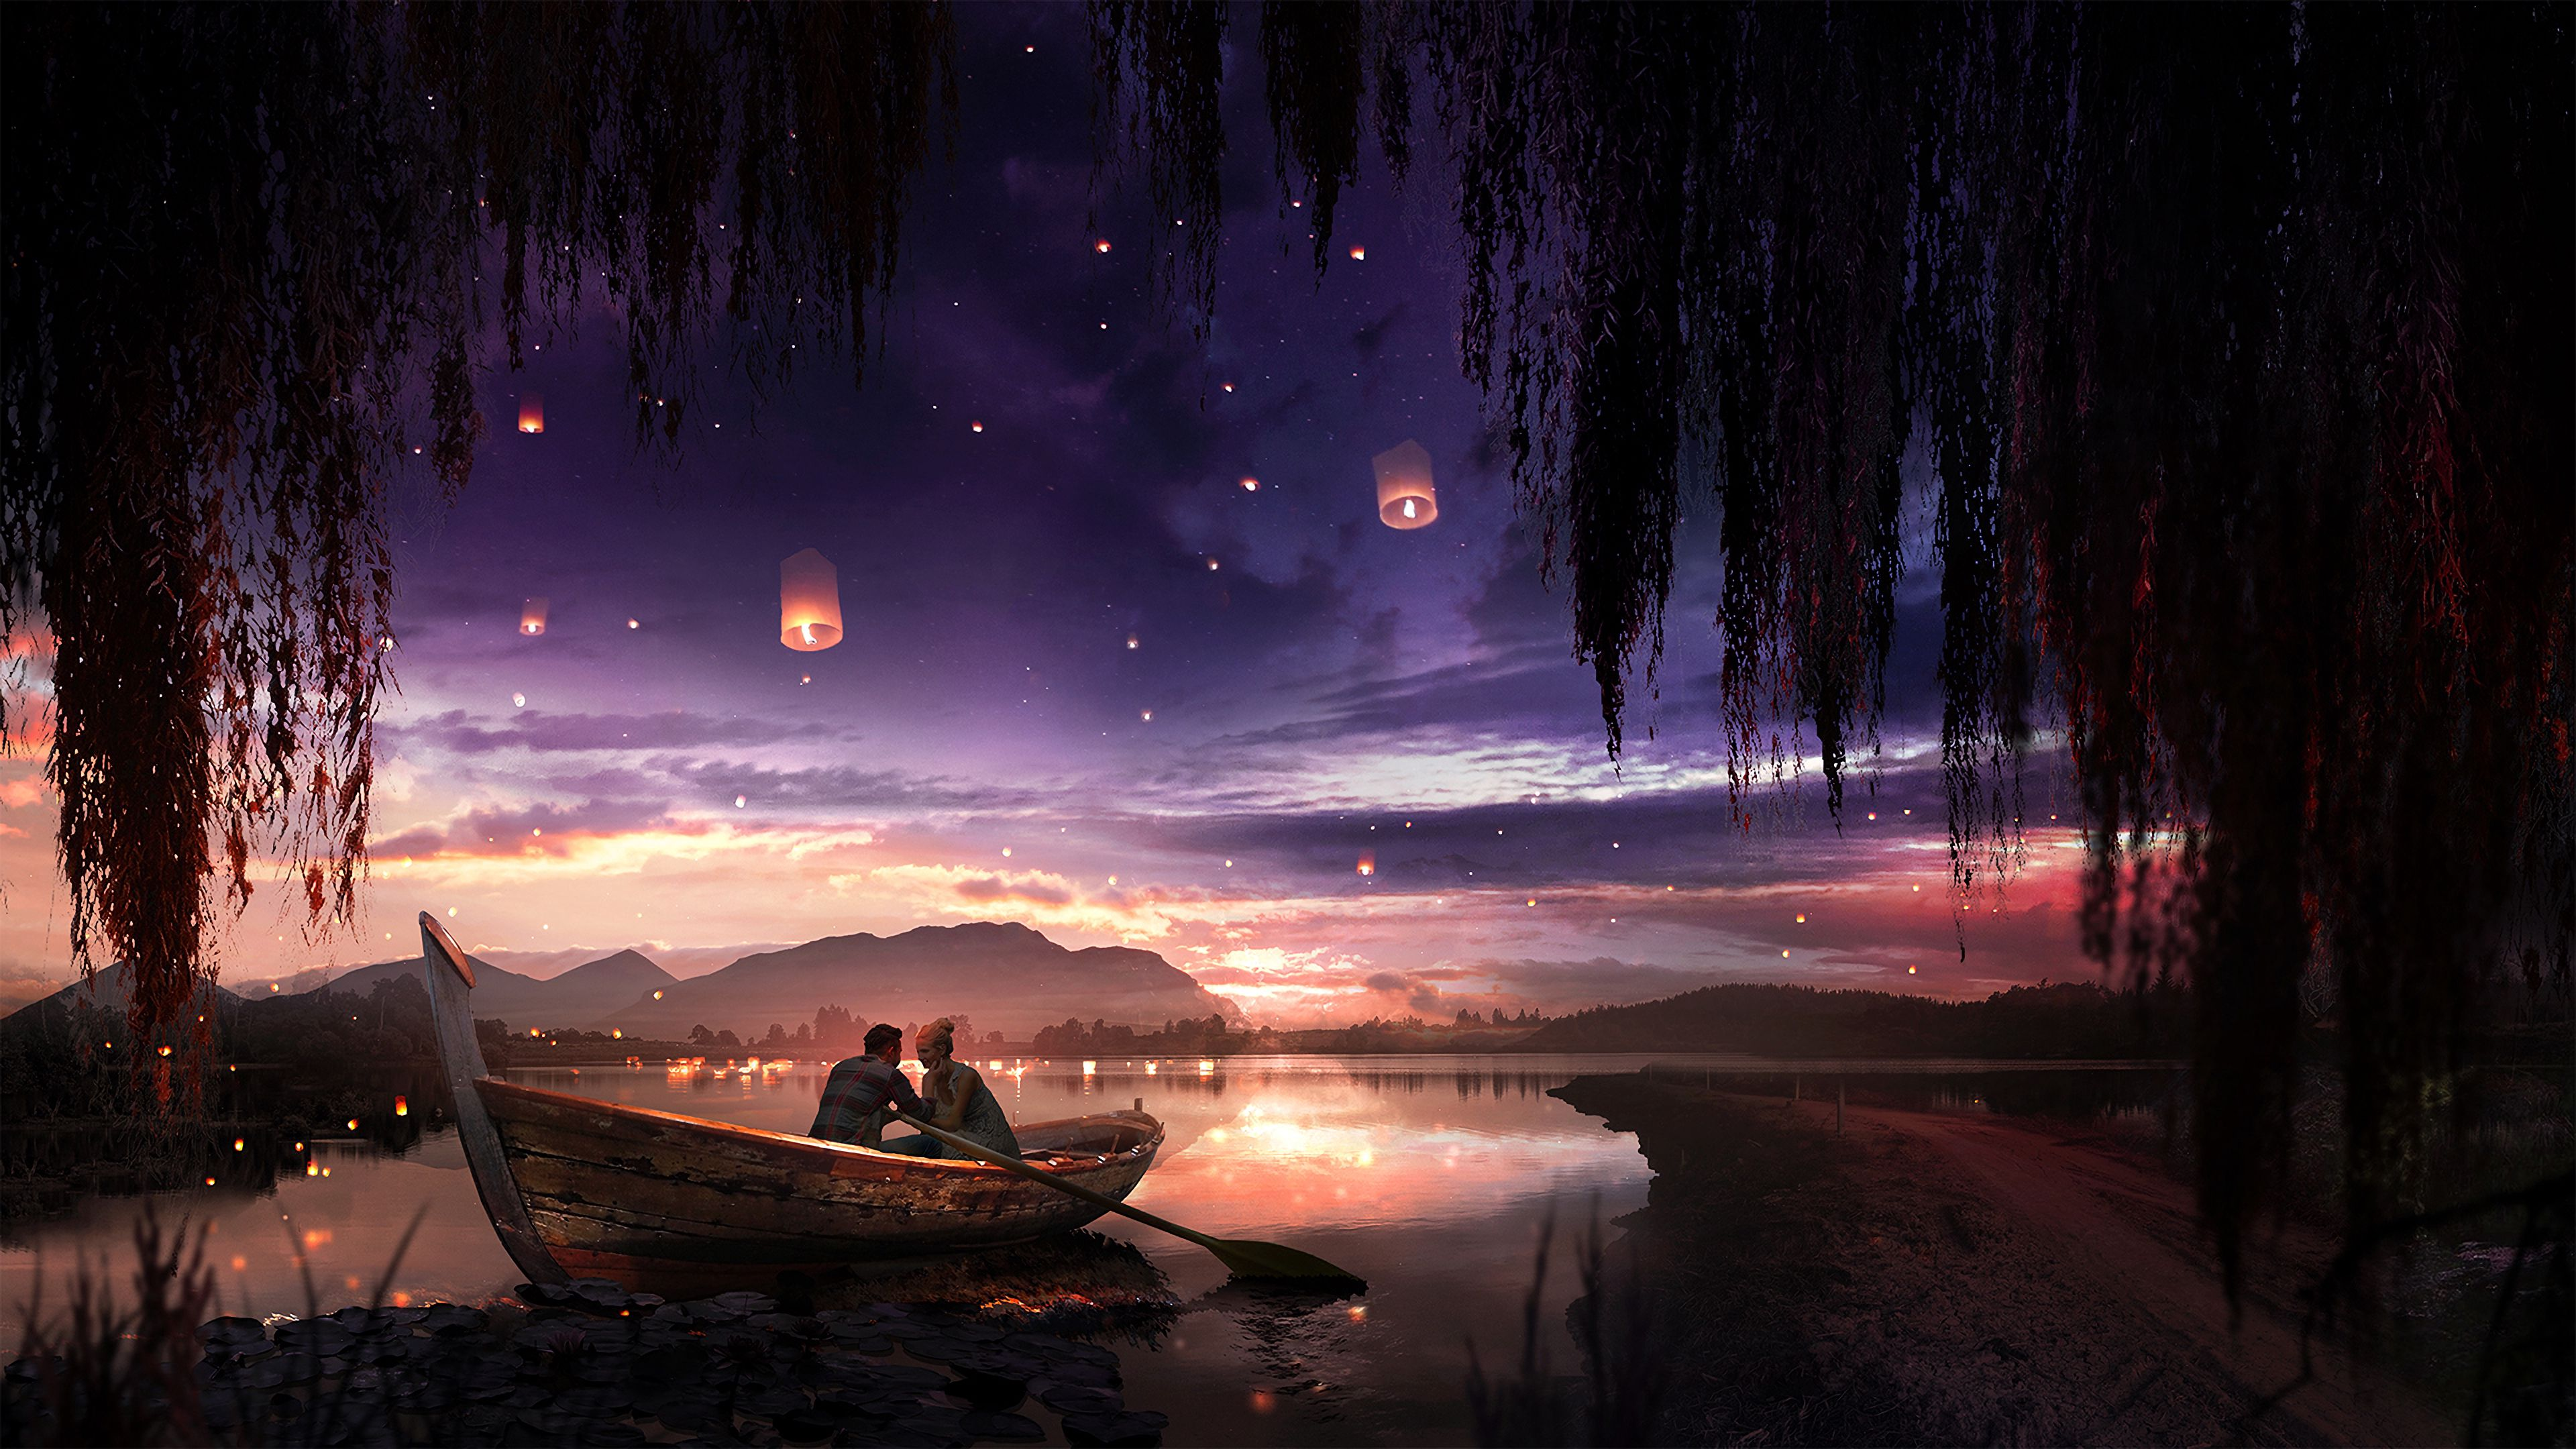 148907 download wallpaper Love, Boat, Couple, Pair, Night, Romance, Art, Stars screensavers and pictures for free